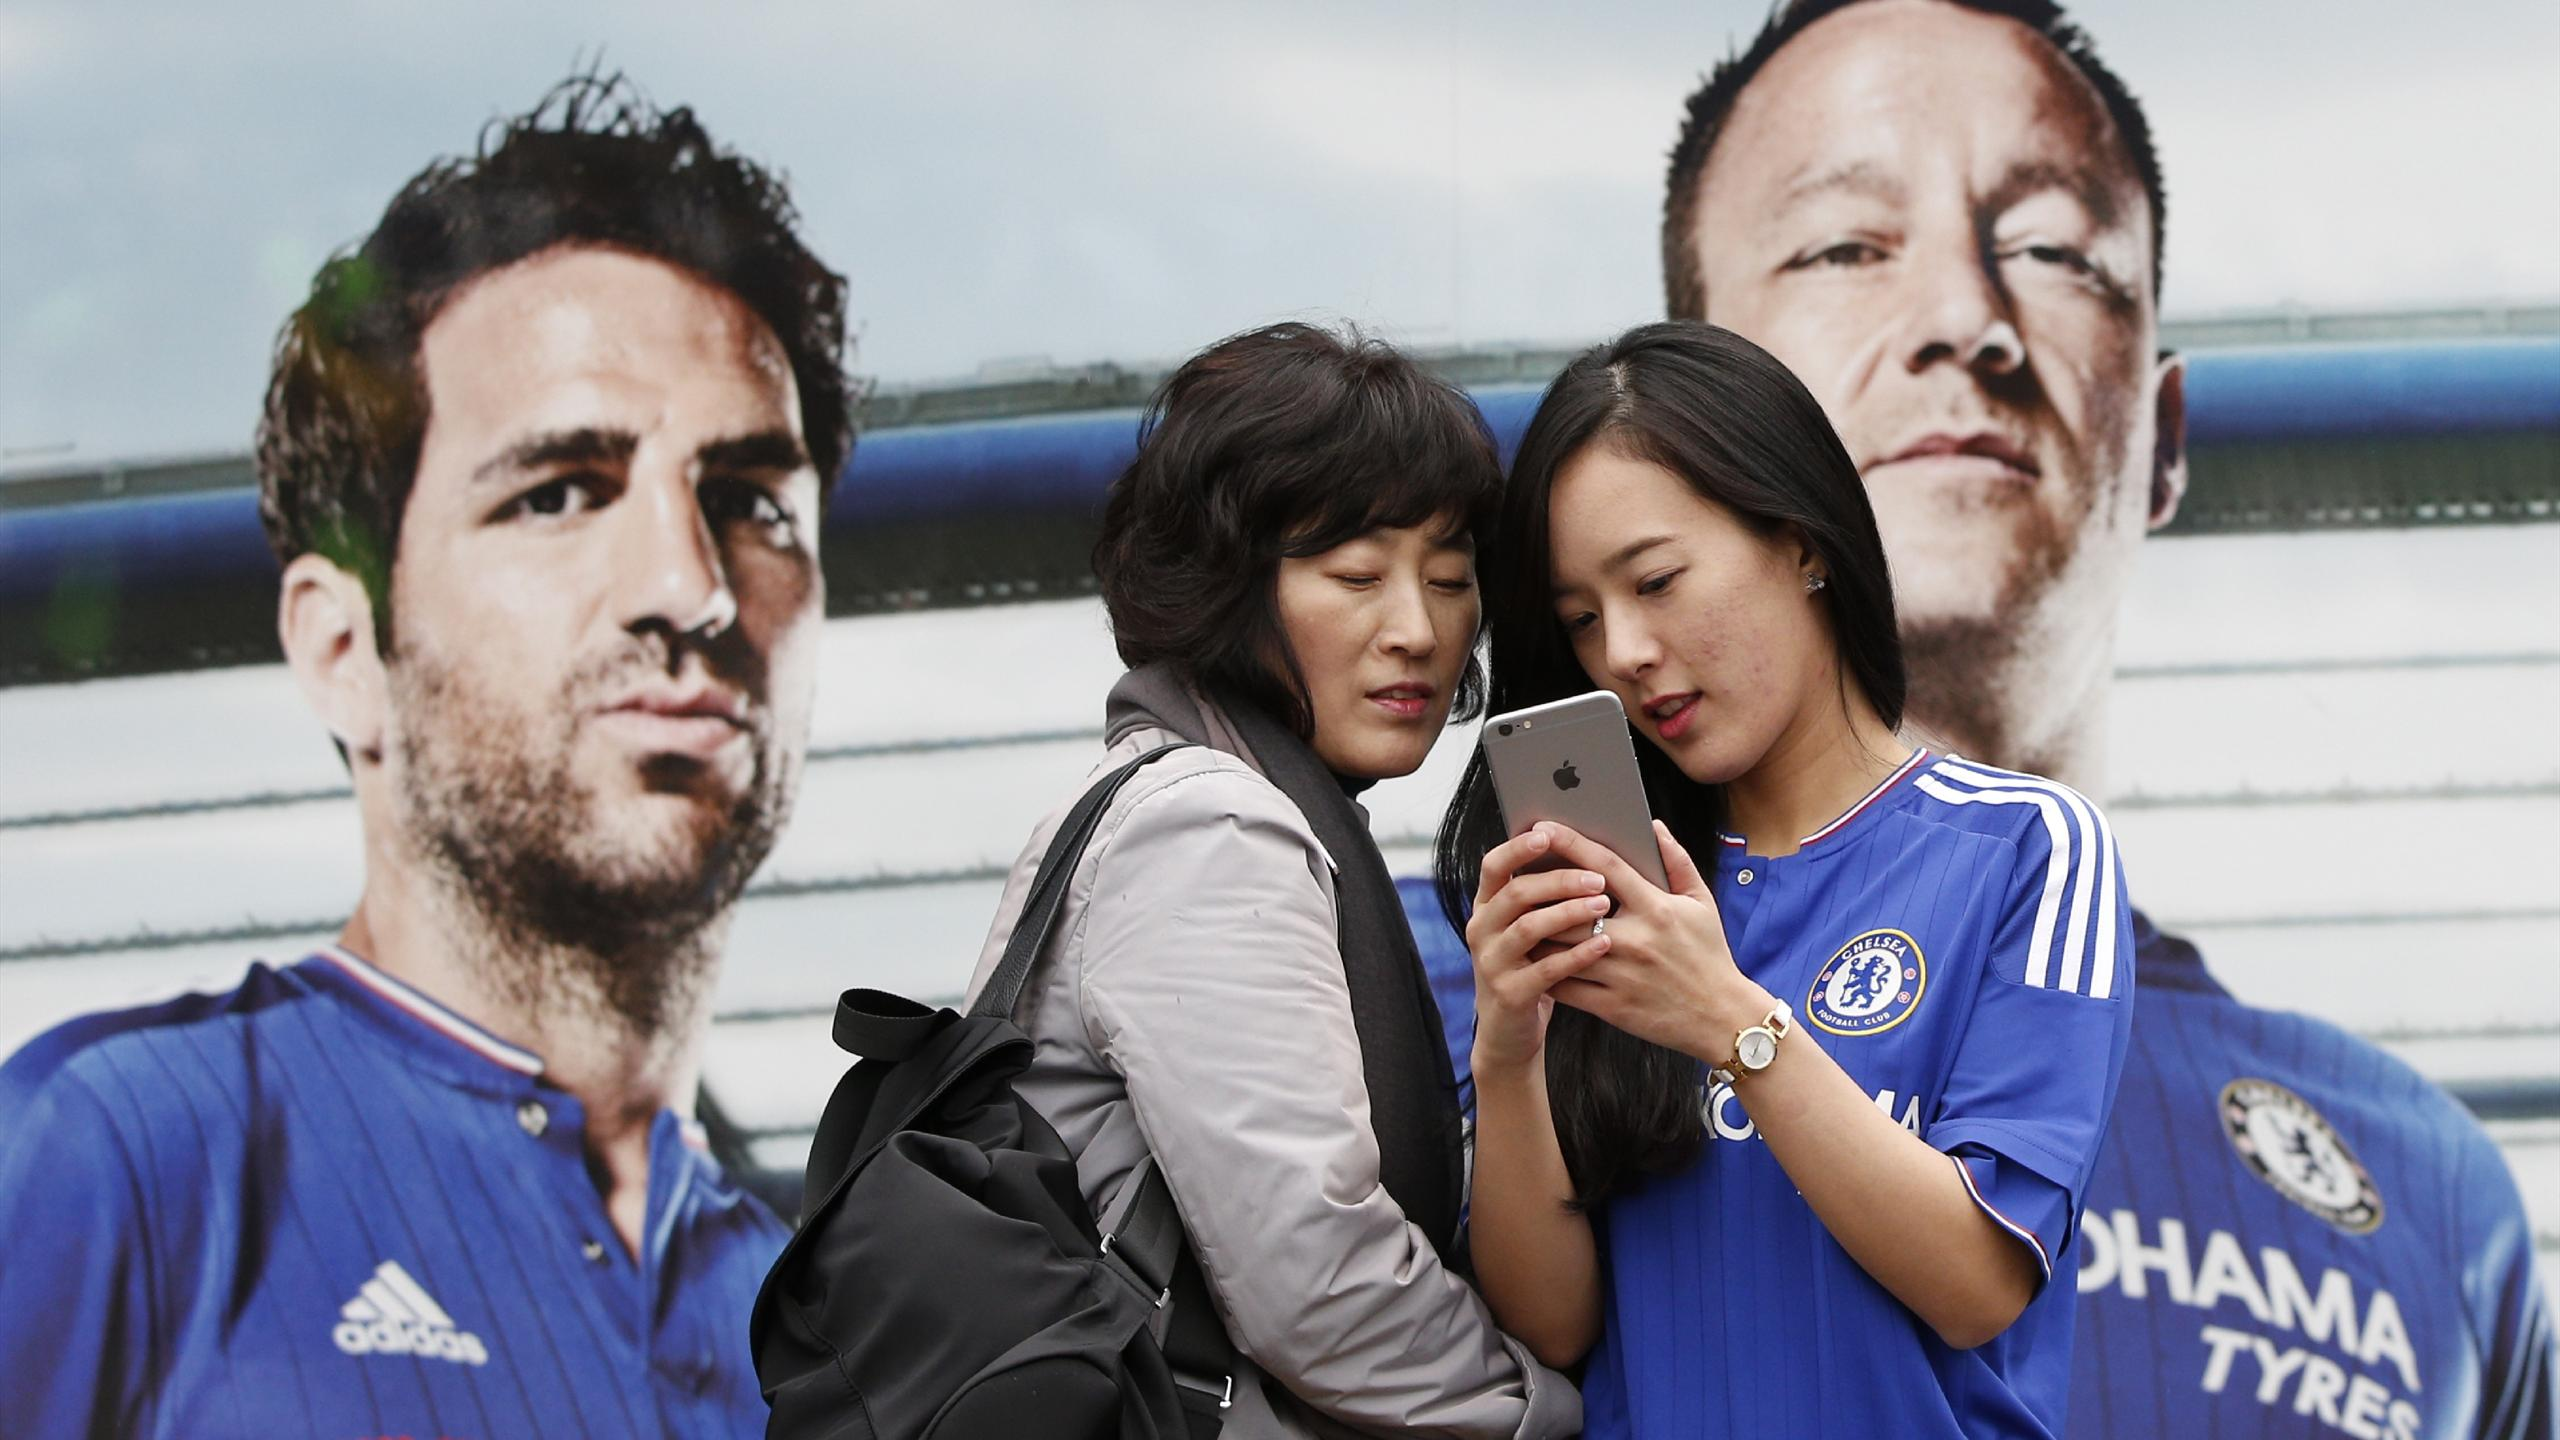 Fans pose by a poster of Chelsea's Spanish midfielder Cesc Fabregas and Chelsea's English defender John Terry